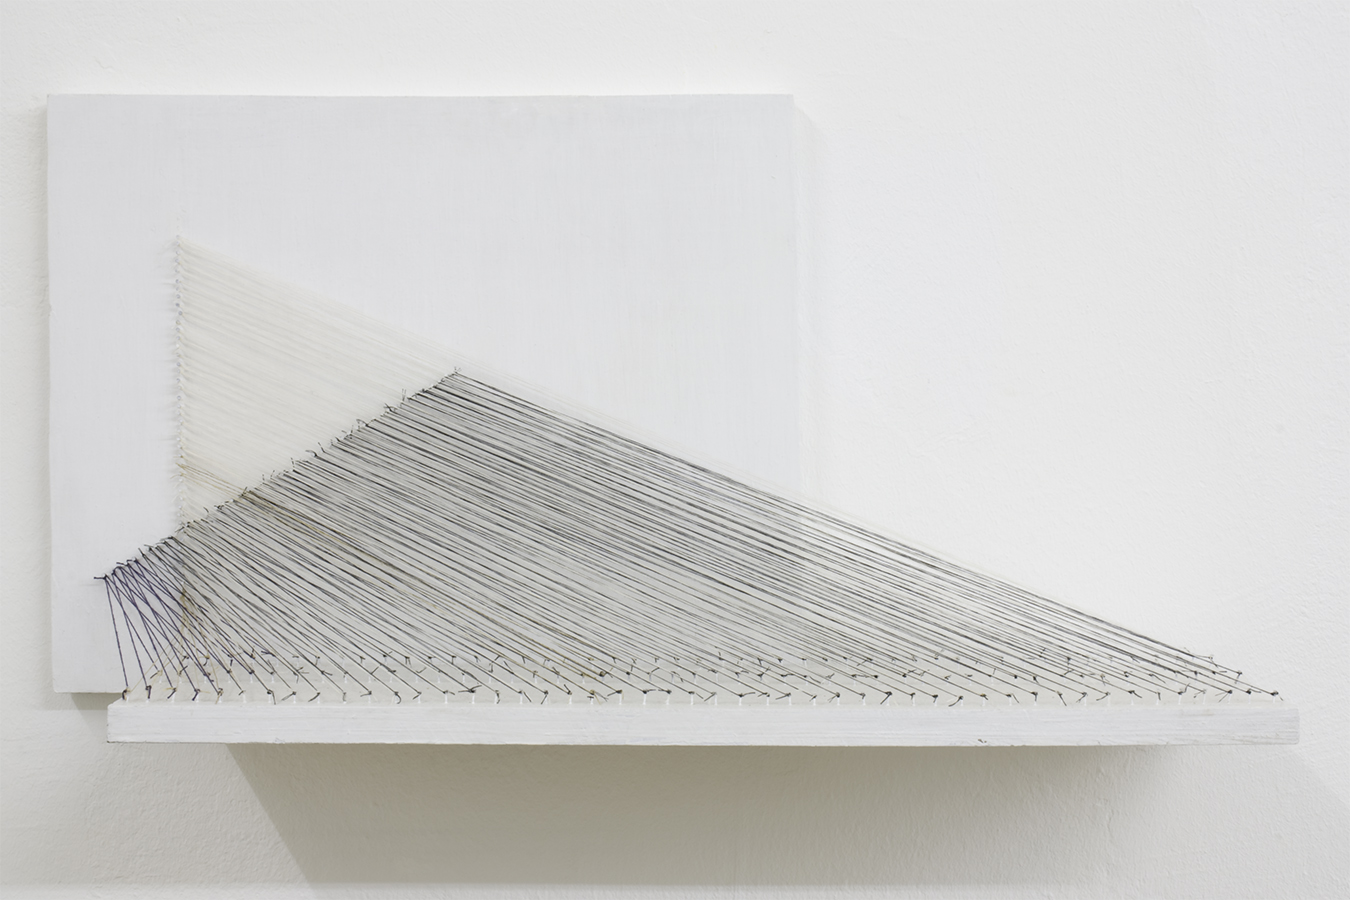 Kazuko Miyamoto, 'Untitled (model for a string construction)', 1971 Industrial cotton string, nails and painted wood, 35.7 × 69 × 17 cm Image courtesy EXILE, Berlin